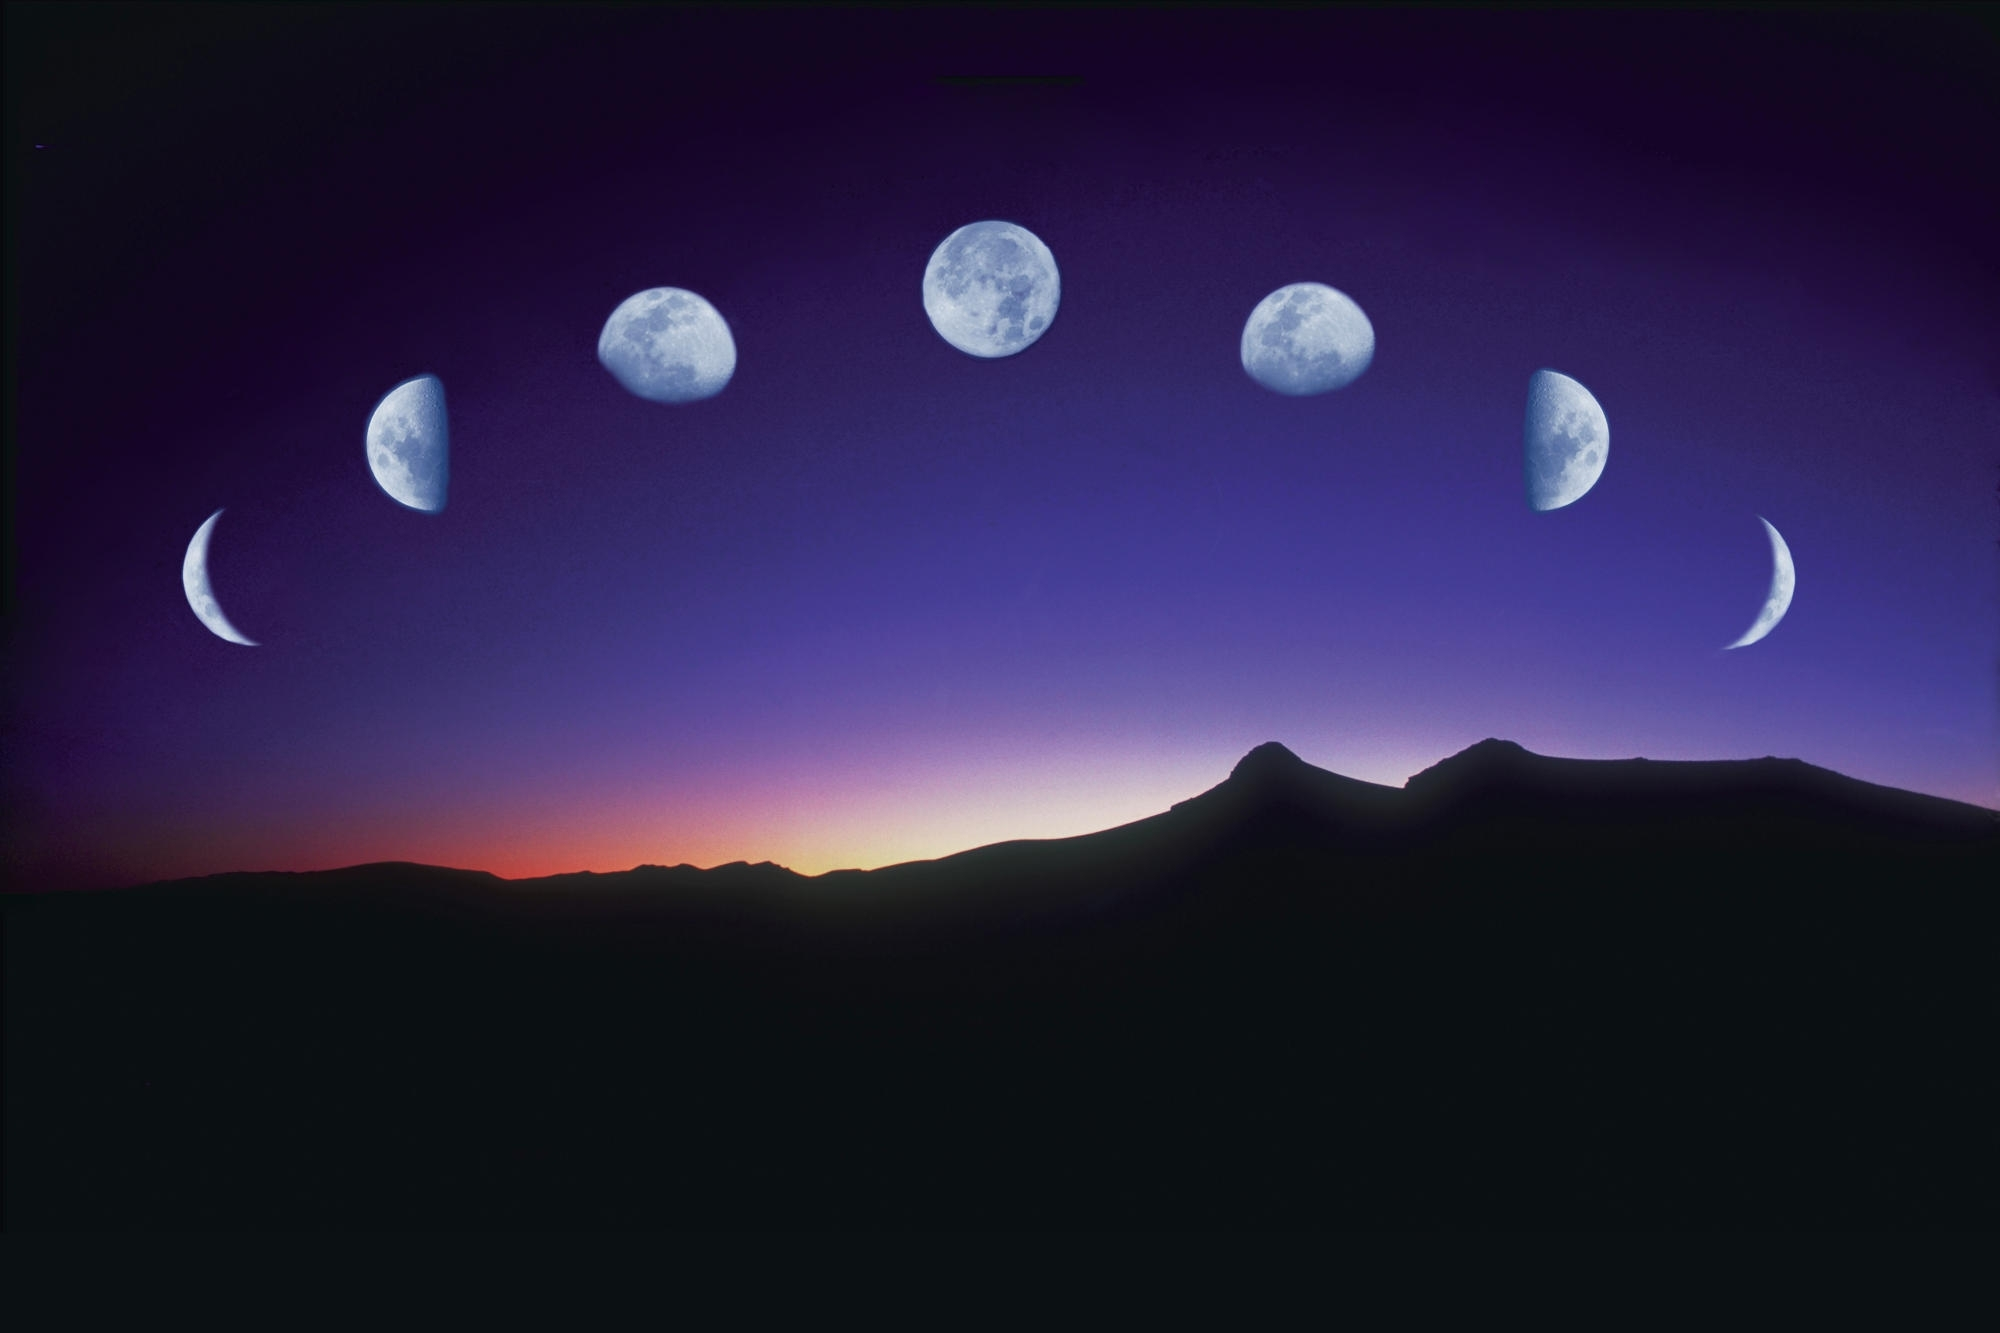 255 moon hd wallpapers   background images - wallpaper abyss